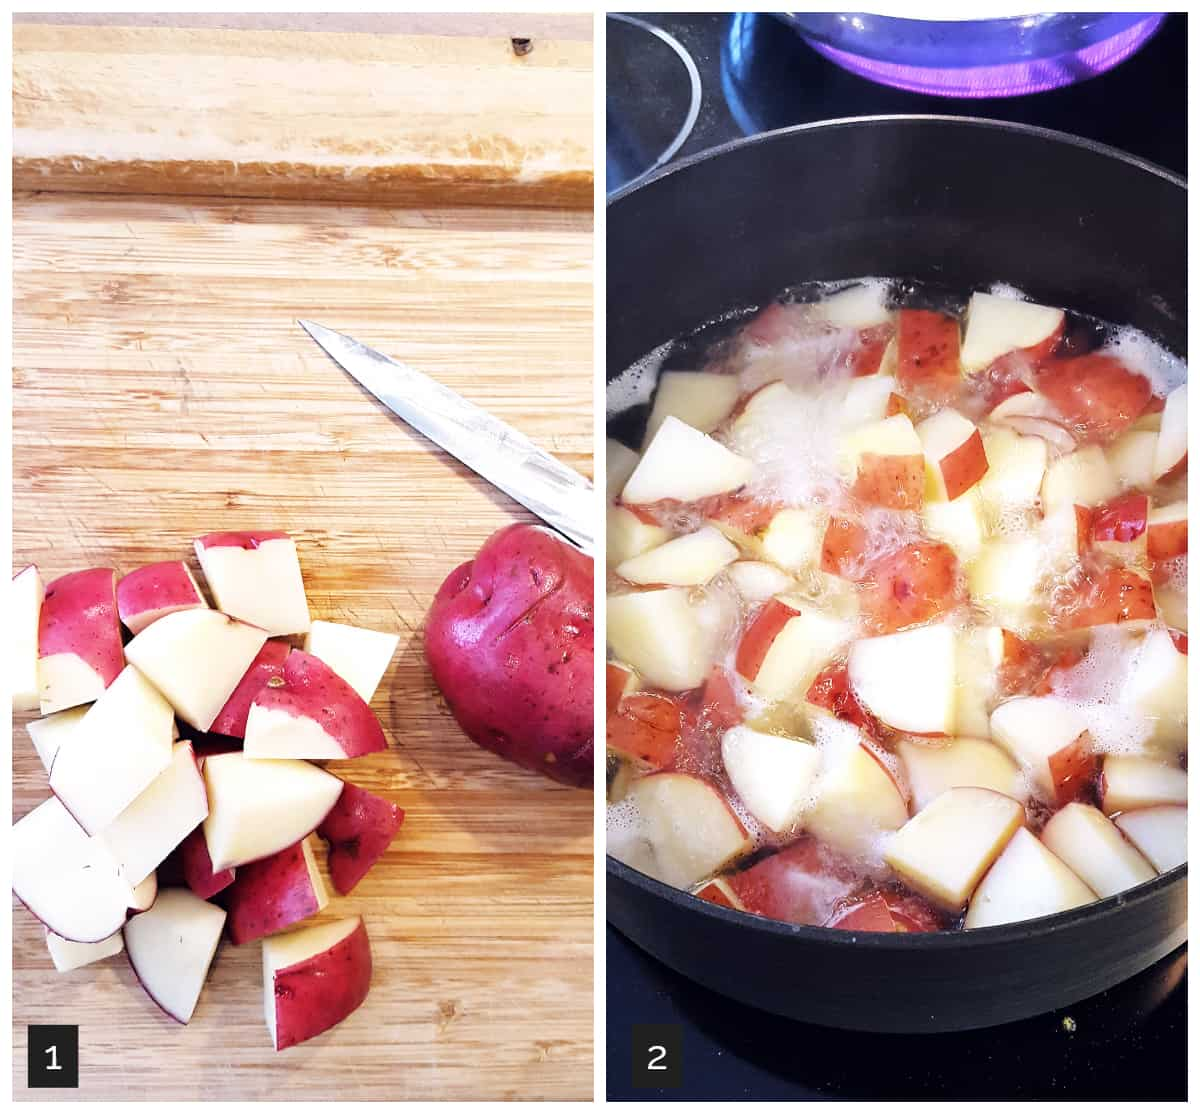 Left: diced potatoes on a cutting board; Right: potatoes boiling in a pot.